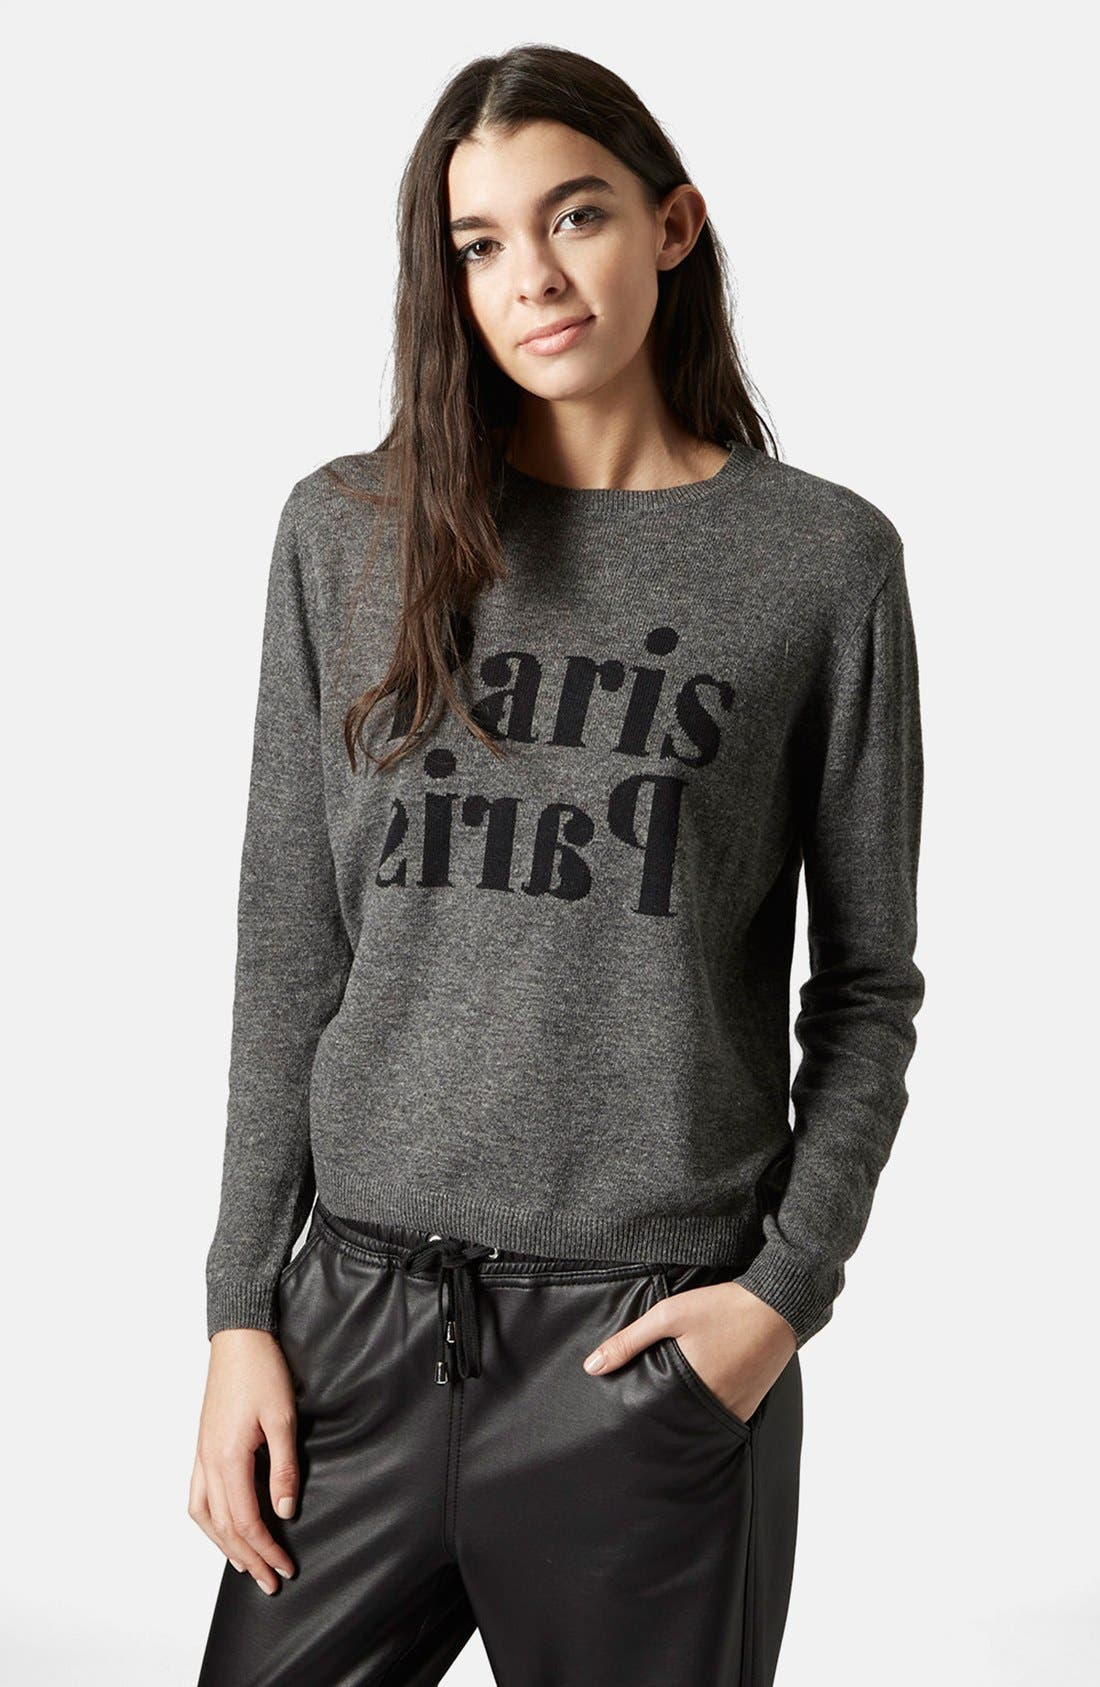 Alternate Image 1 Selected - Topshop 'Paris, Paris' Crewneck Sweater